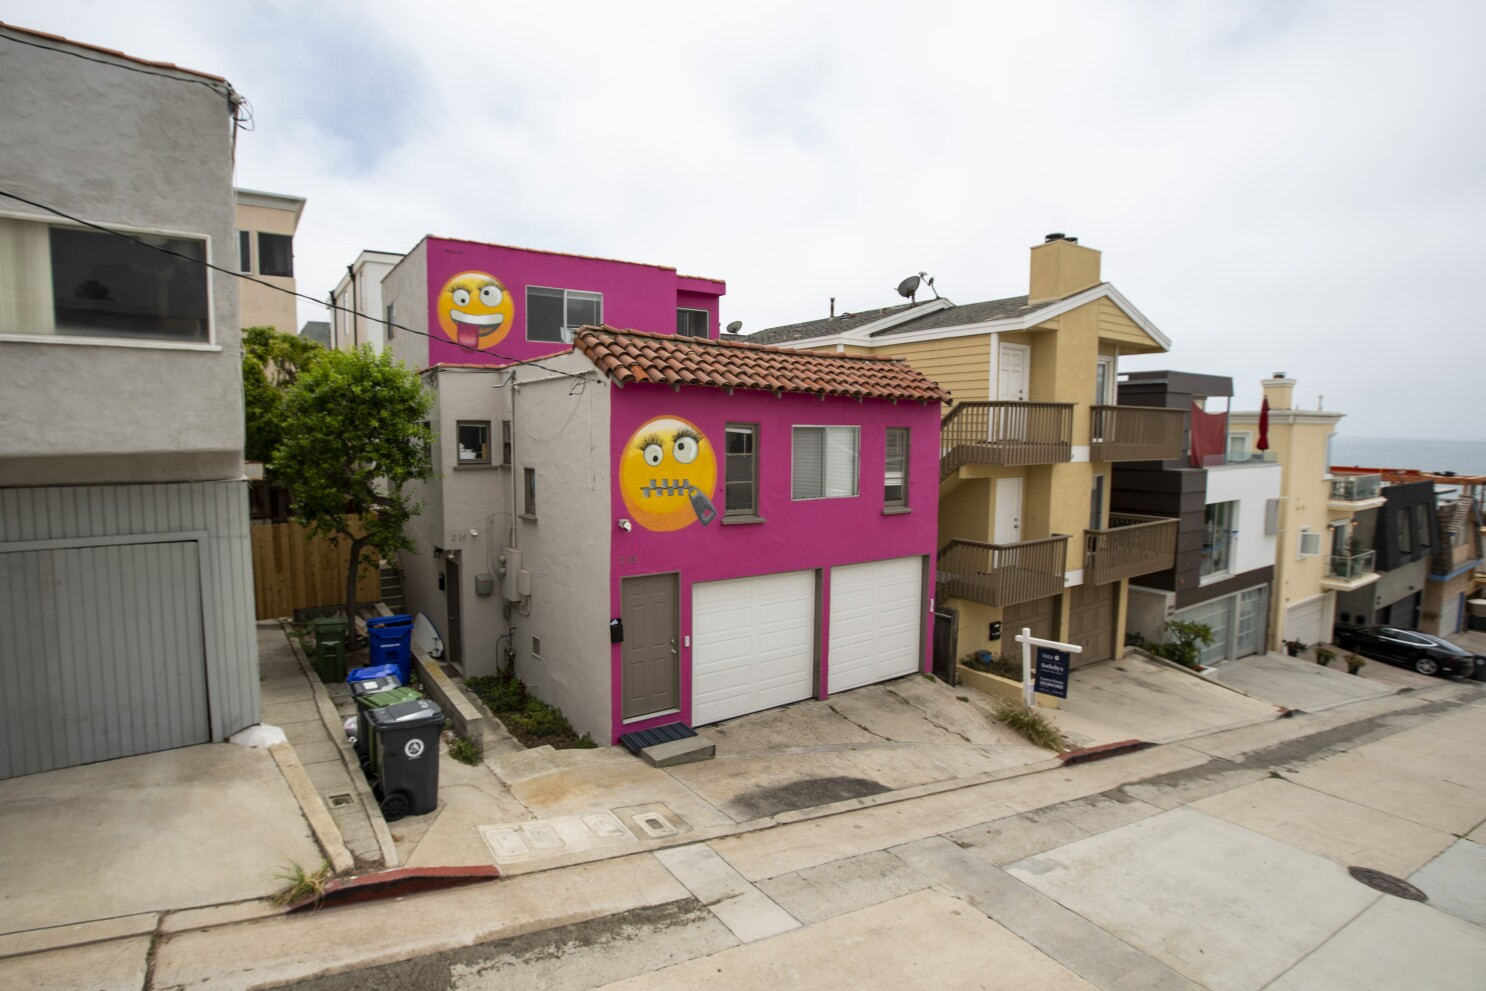 Hot-pink 'emoji house' is eyeing a new owner in Manhattan Beach